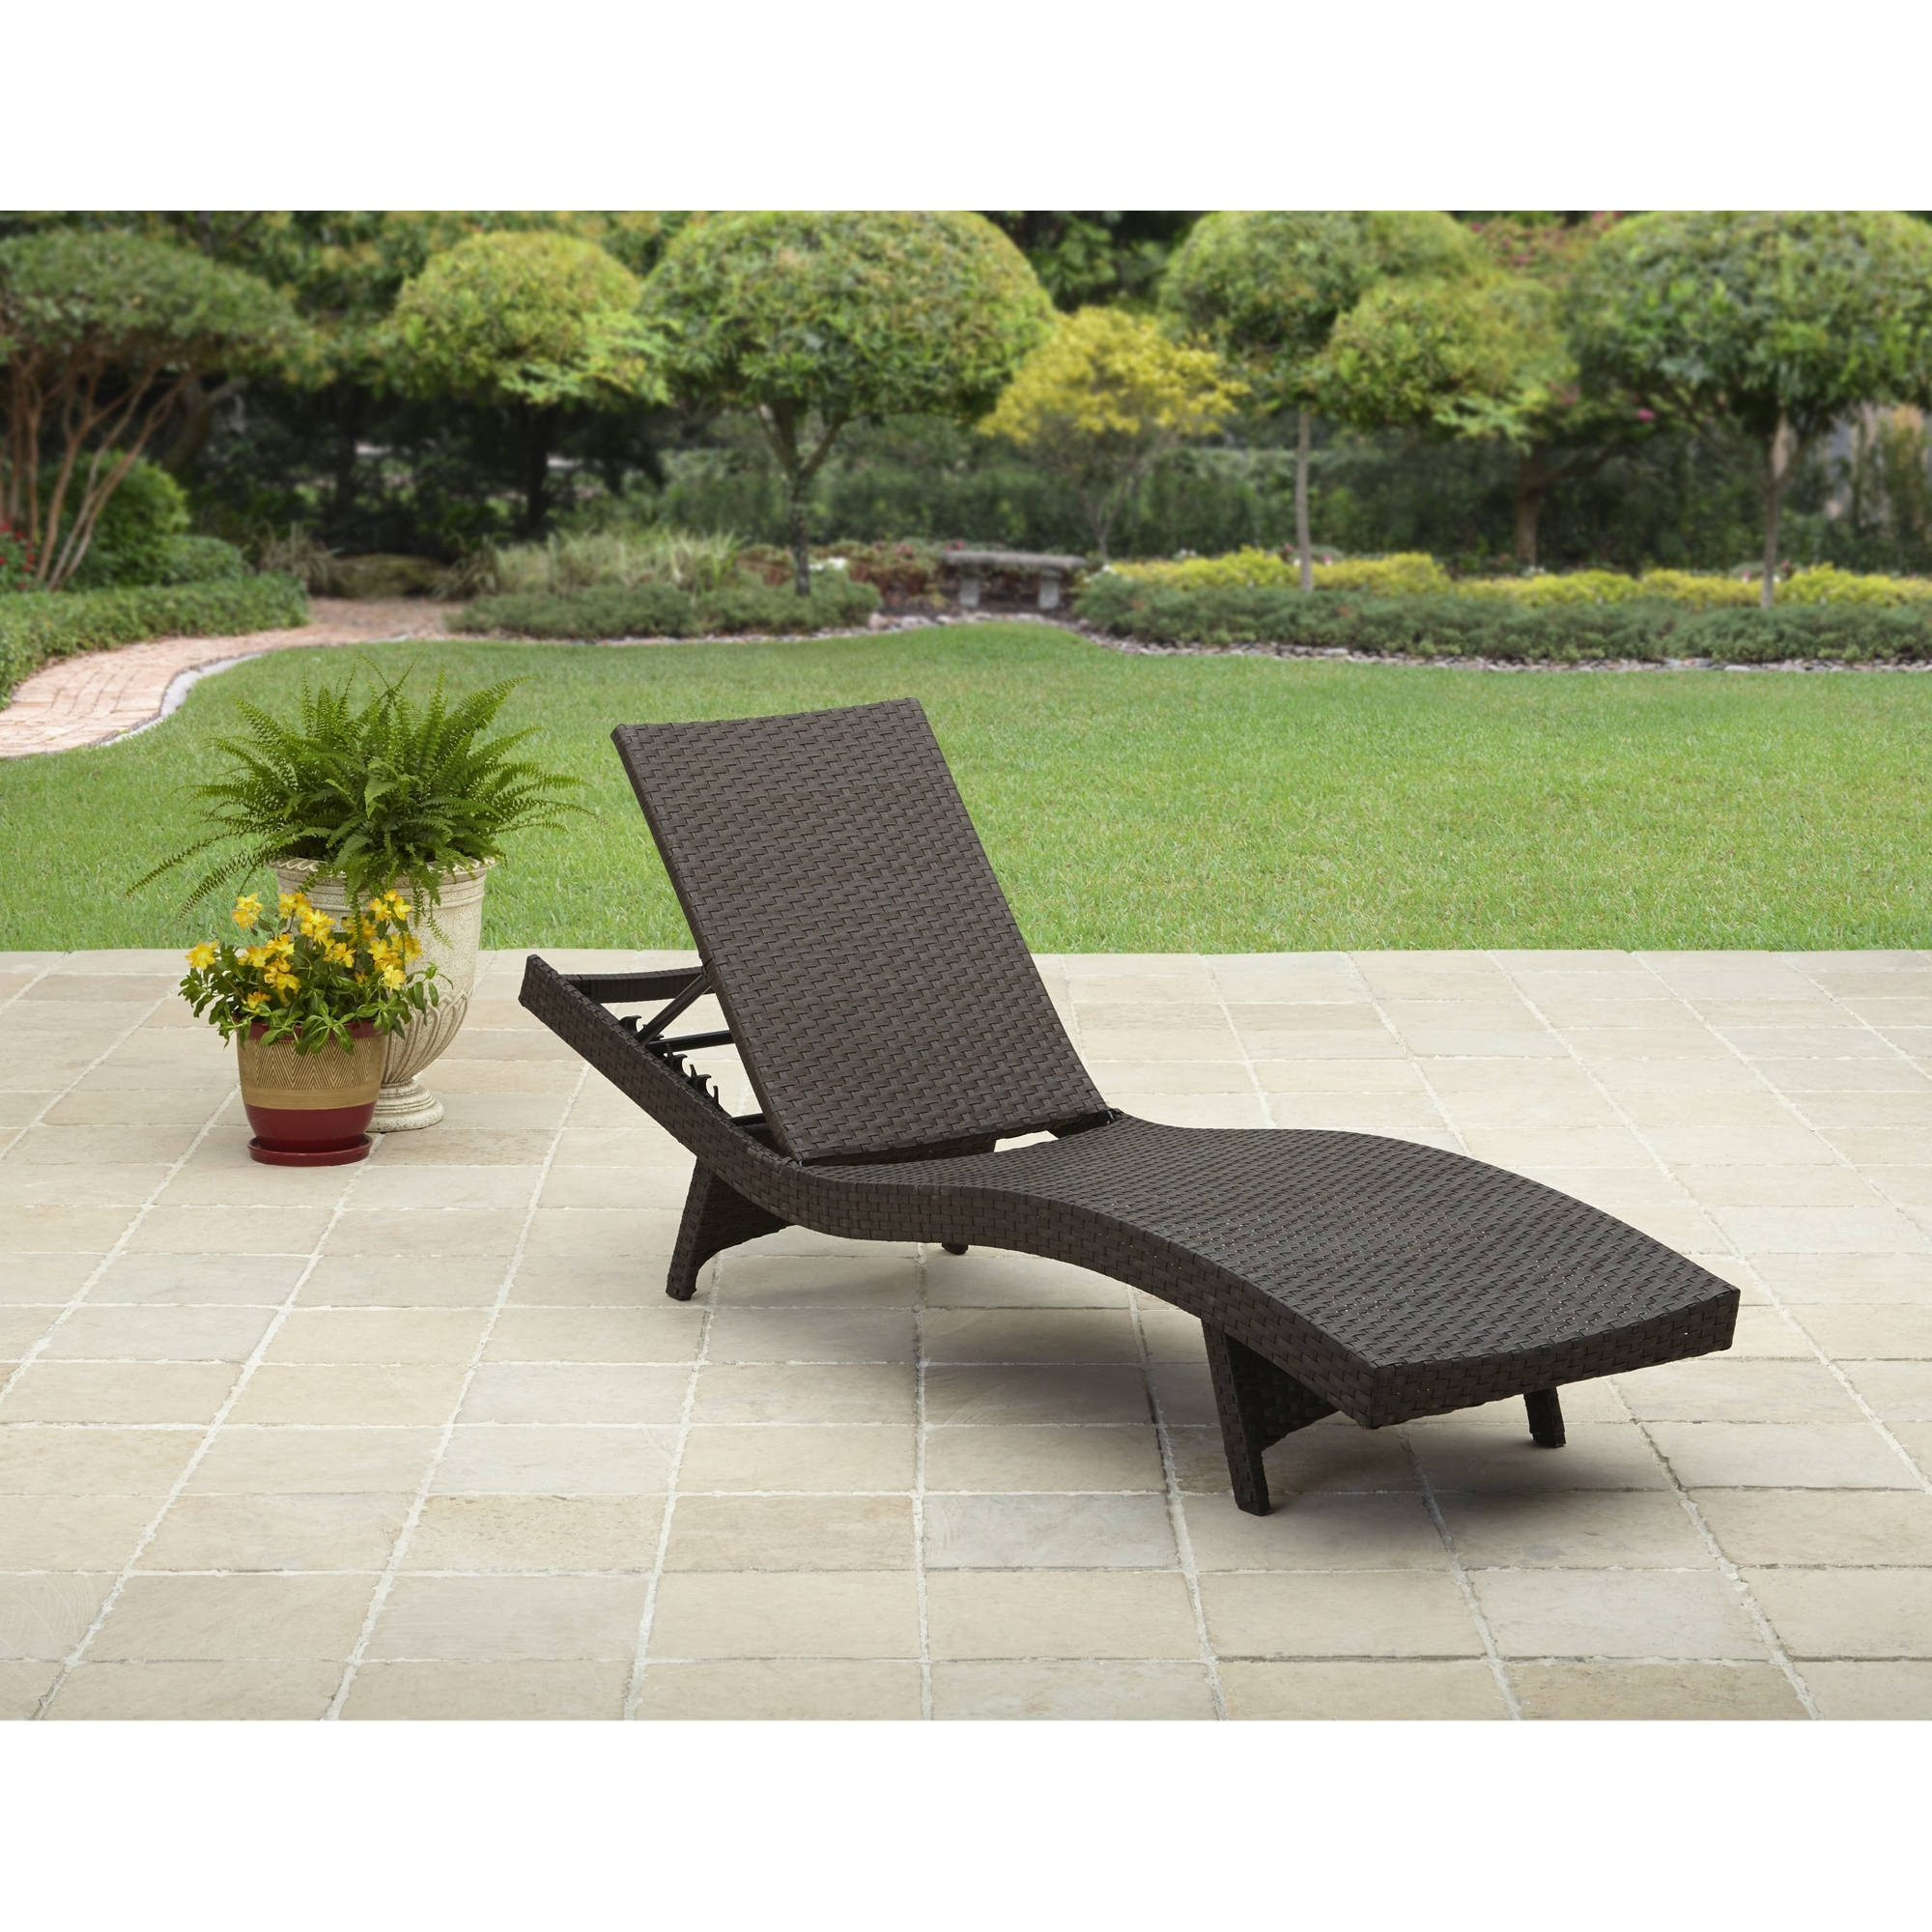 Popular Walmart Chaise Lounge Chairs Intended For Better Homes And Gardens Avila Beach Chaise – Walmart (View 10 of 15)